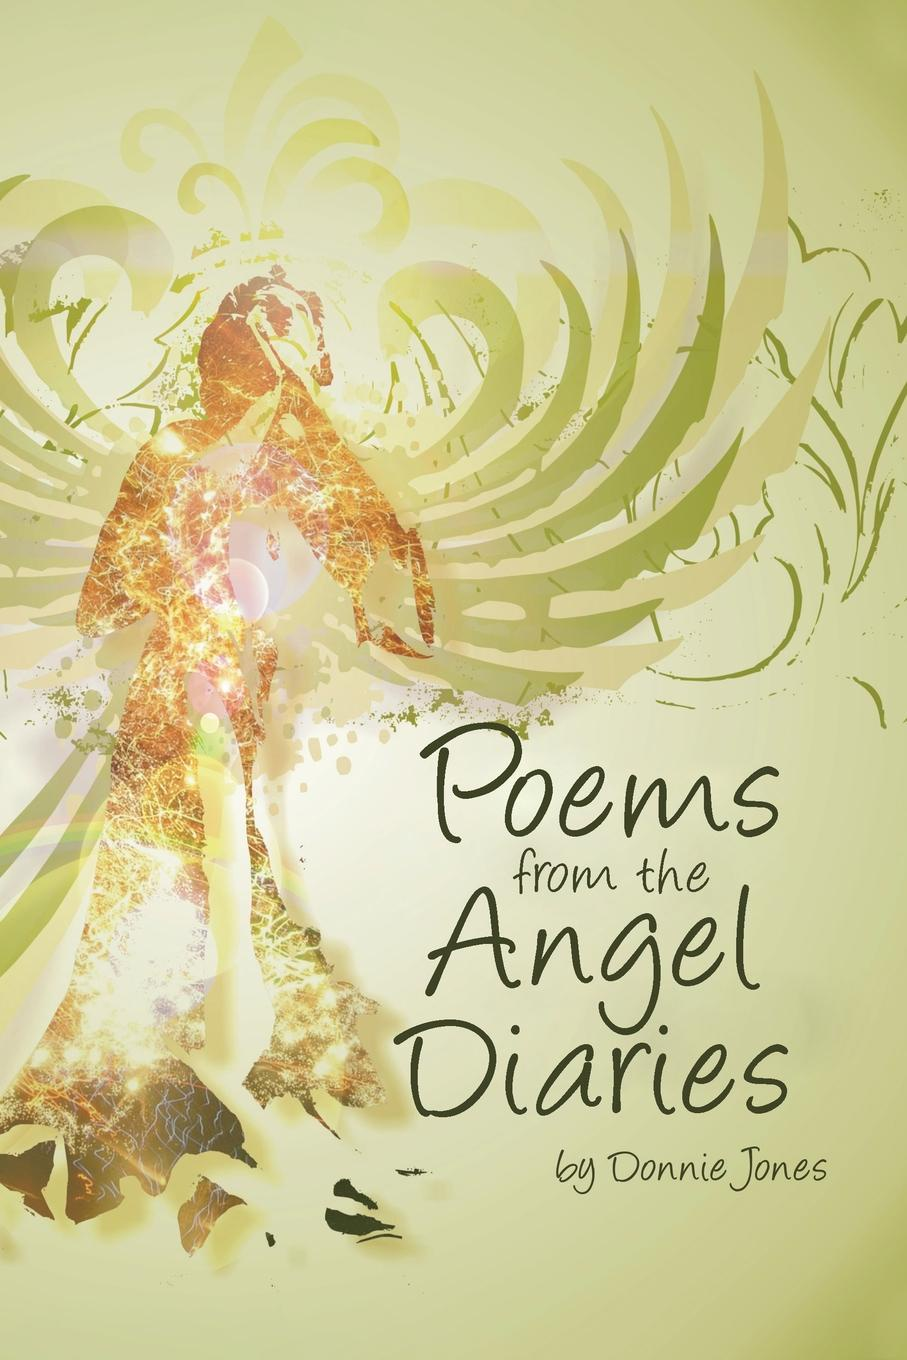 Donnie Jones Poems from the Angel Diaries